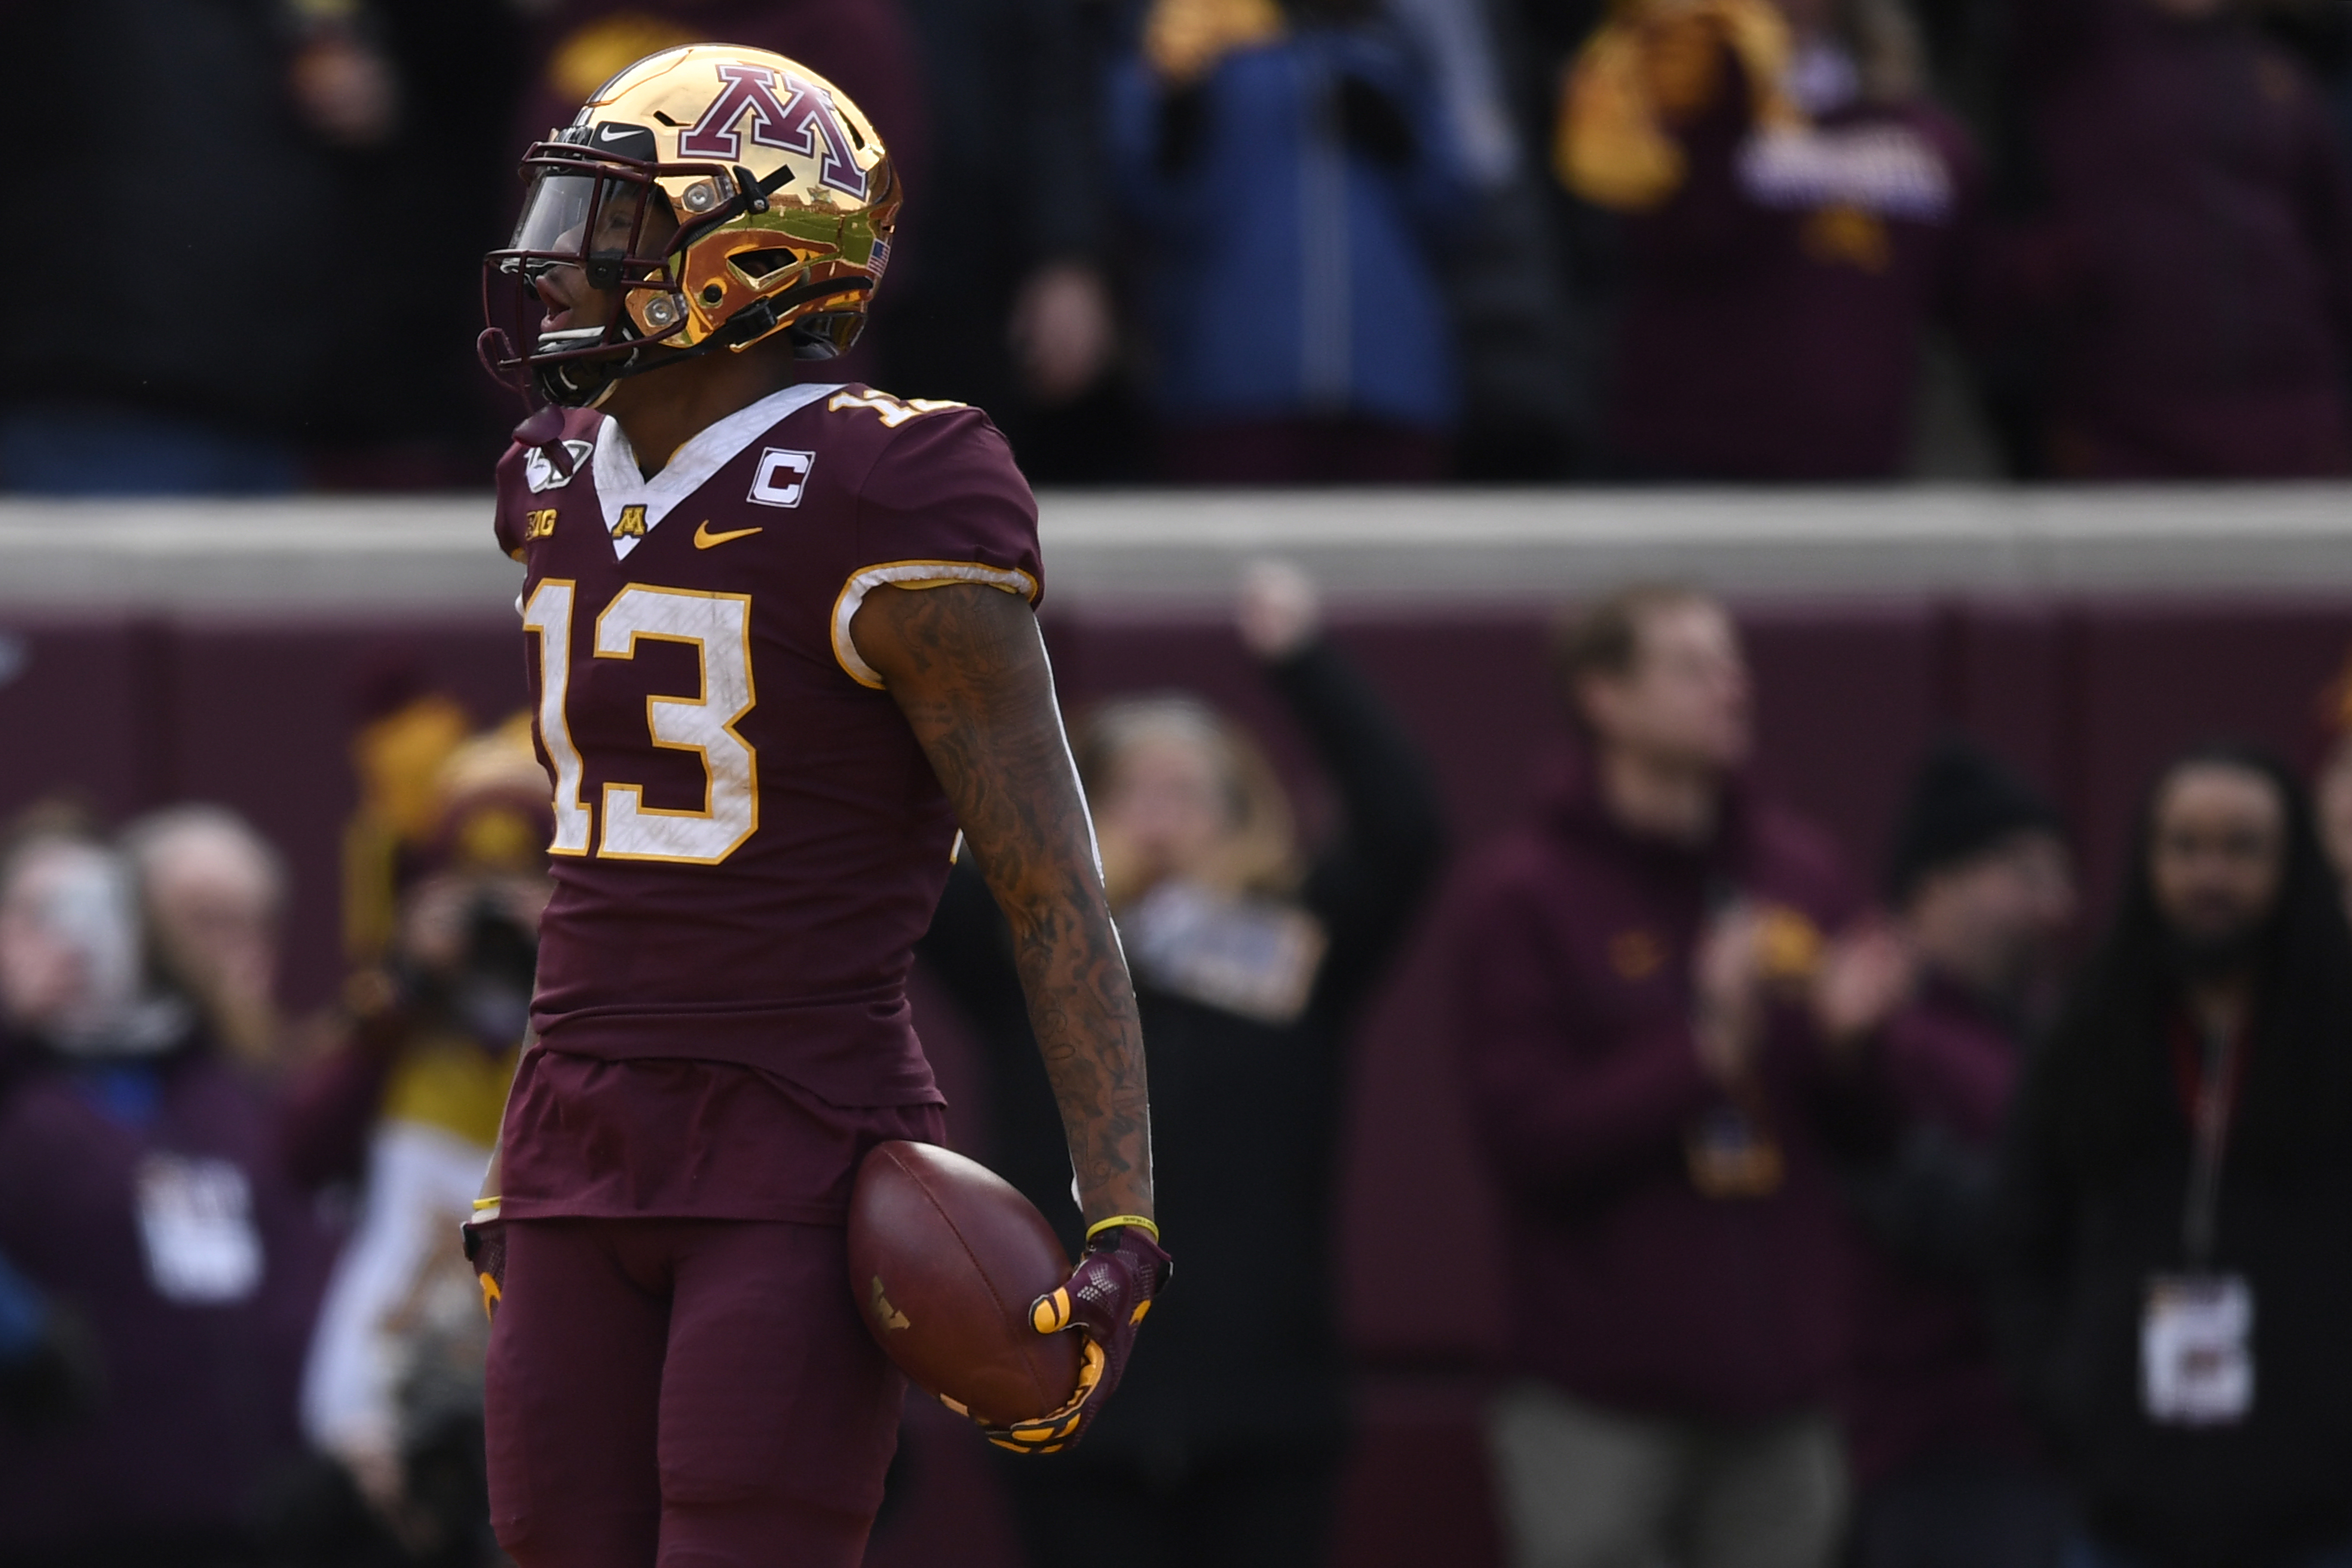 Wide receiver Rashod Bateman #13 of the Minnesota Golden Gophers scores a touchdown against the Penn State Nittany Lions during the first quarter at TCFBank Stadium on November 09, 2019 in Minneapolis, Minnesota.